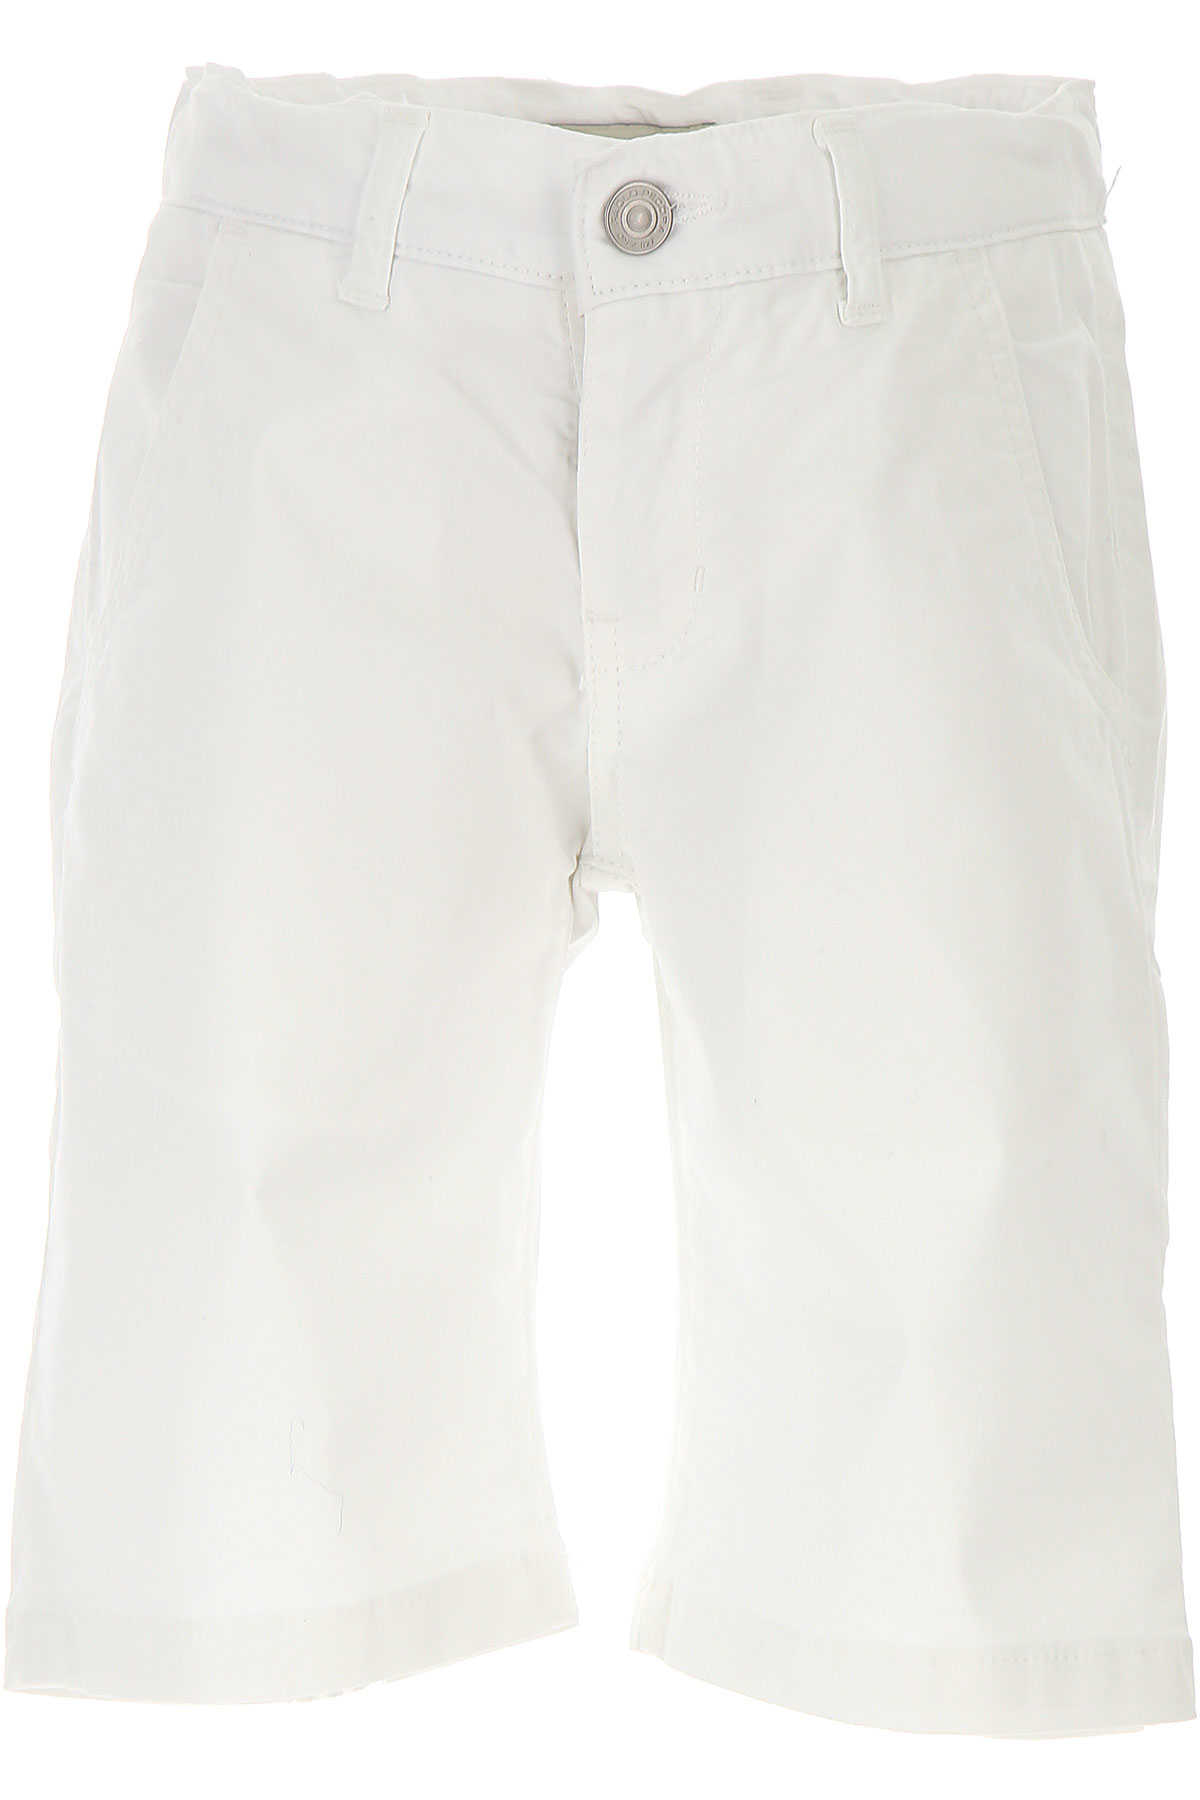 Paolo Pecora Kids Shorts for Boys On Sale in Outlet White SE - GOOFASH